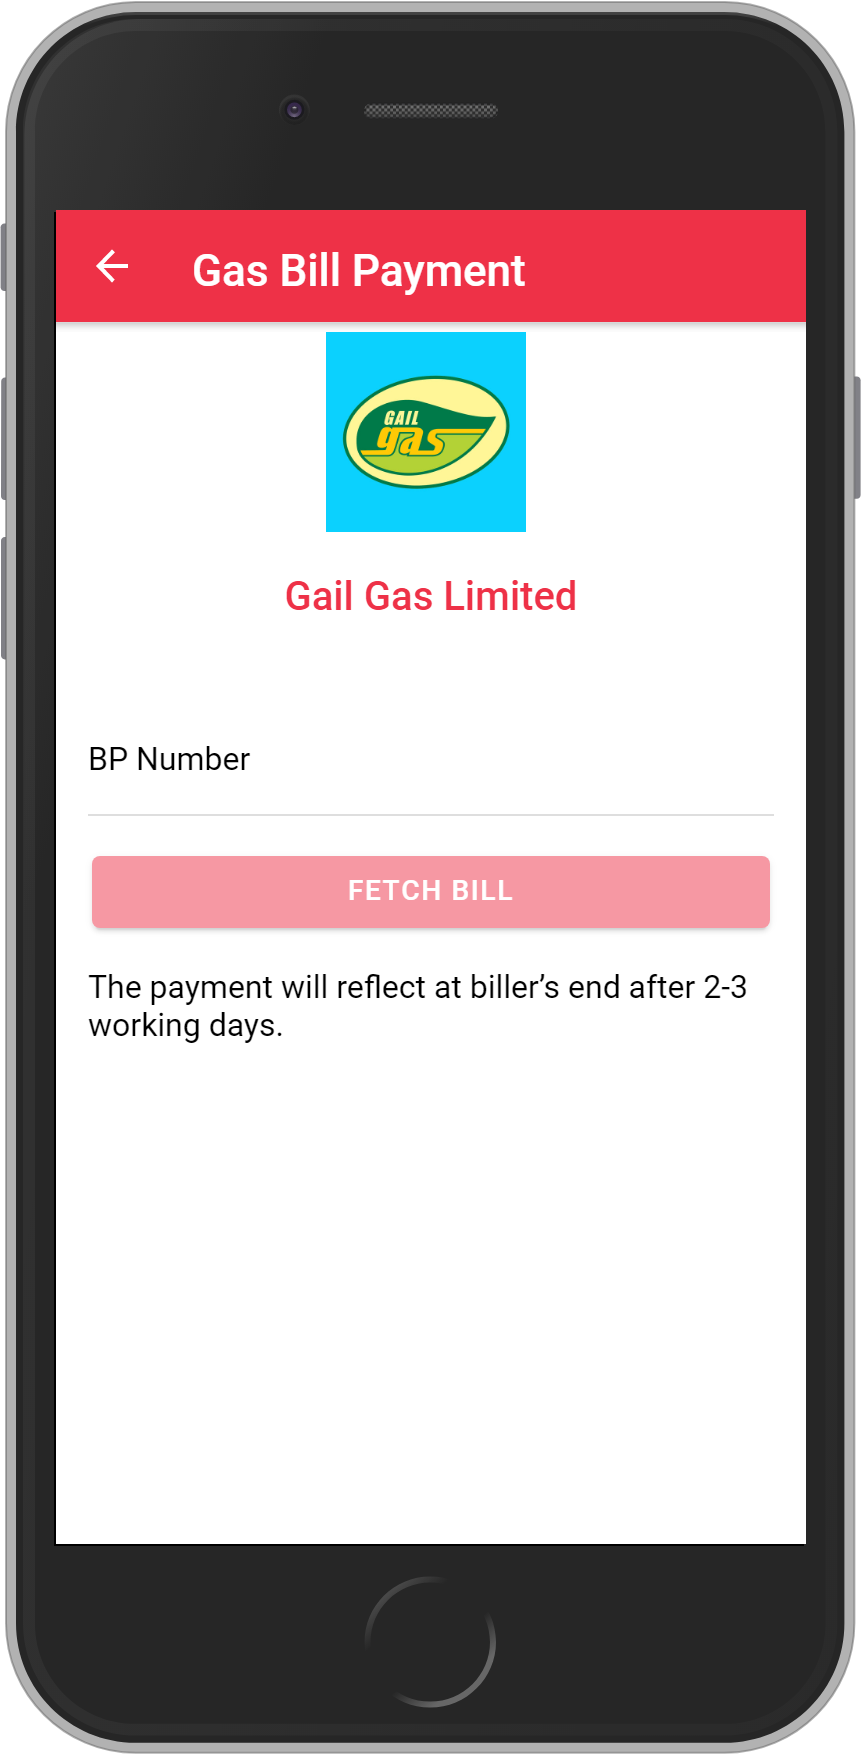 Get UNLIMITED <b>0.1%</b> CASHBACK on Gail Gas Limited Bill Payment.